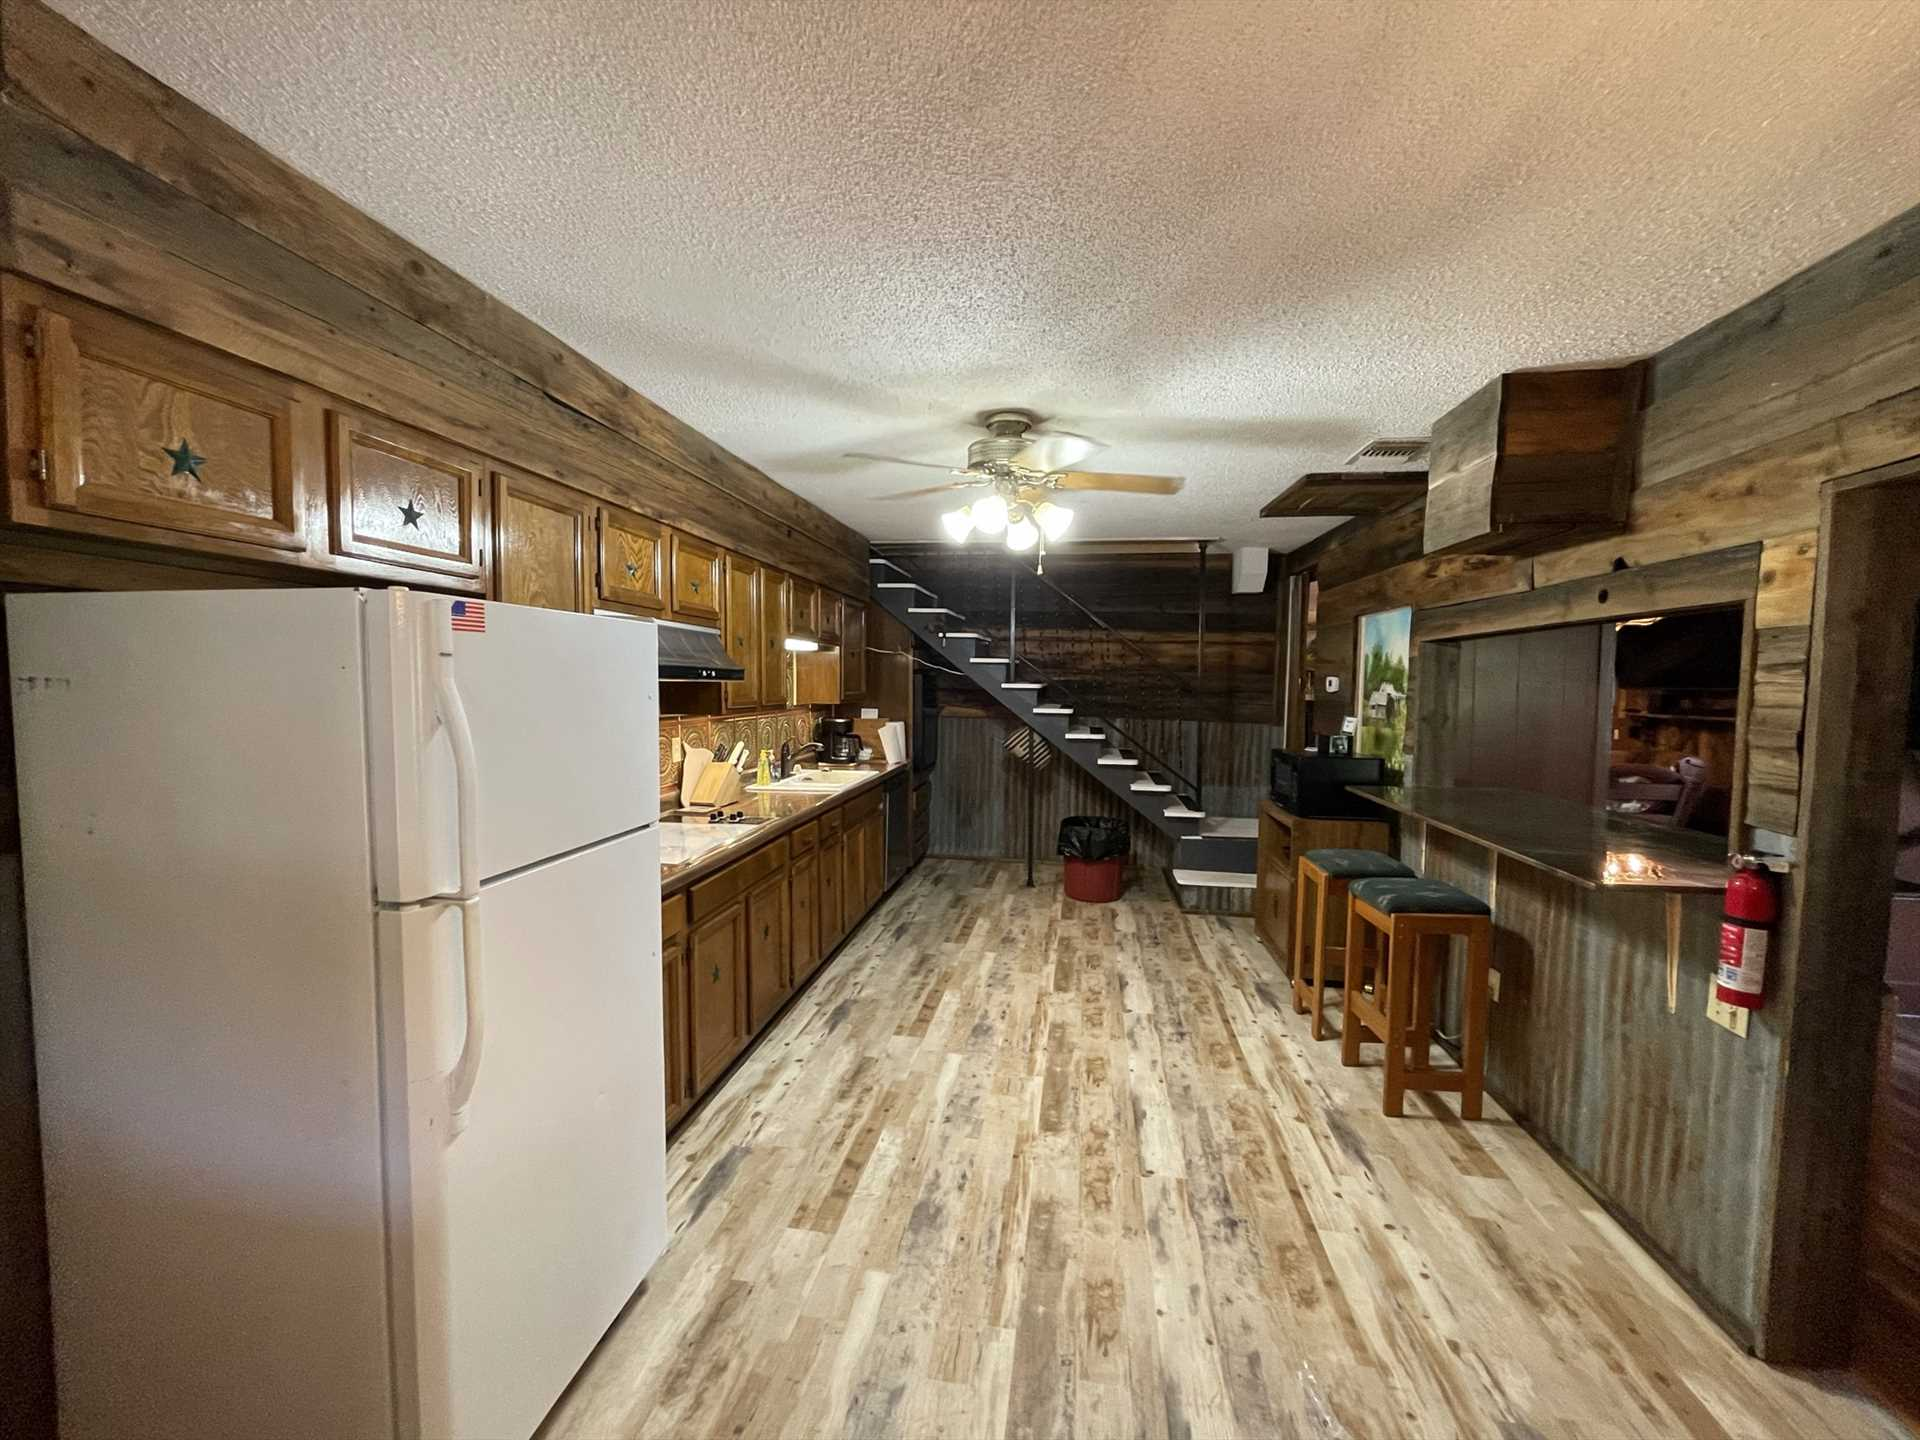 No matter how many chefs you have in your group, they'll have plenty of elbow room in this big kitchen!